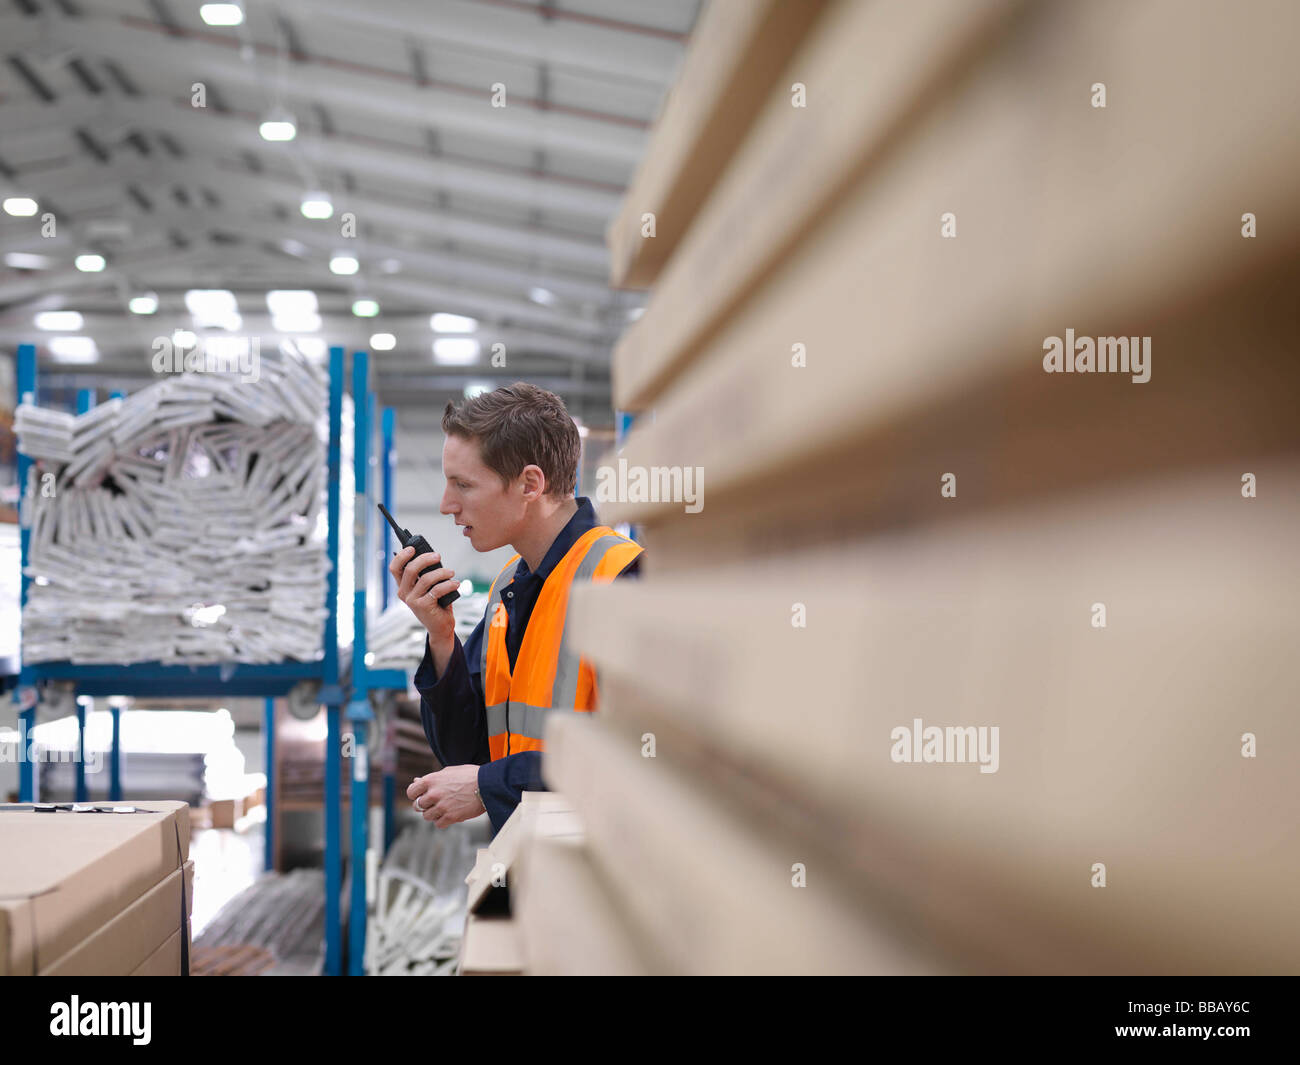 Worker On Walkie Talkie In Warehouse - Stock Image